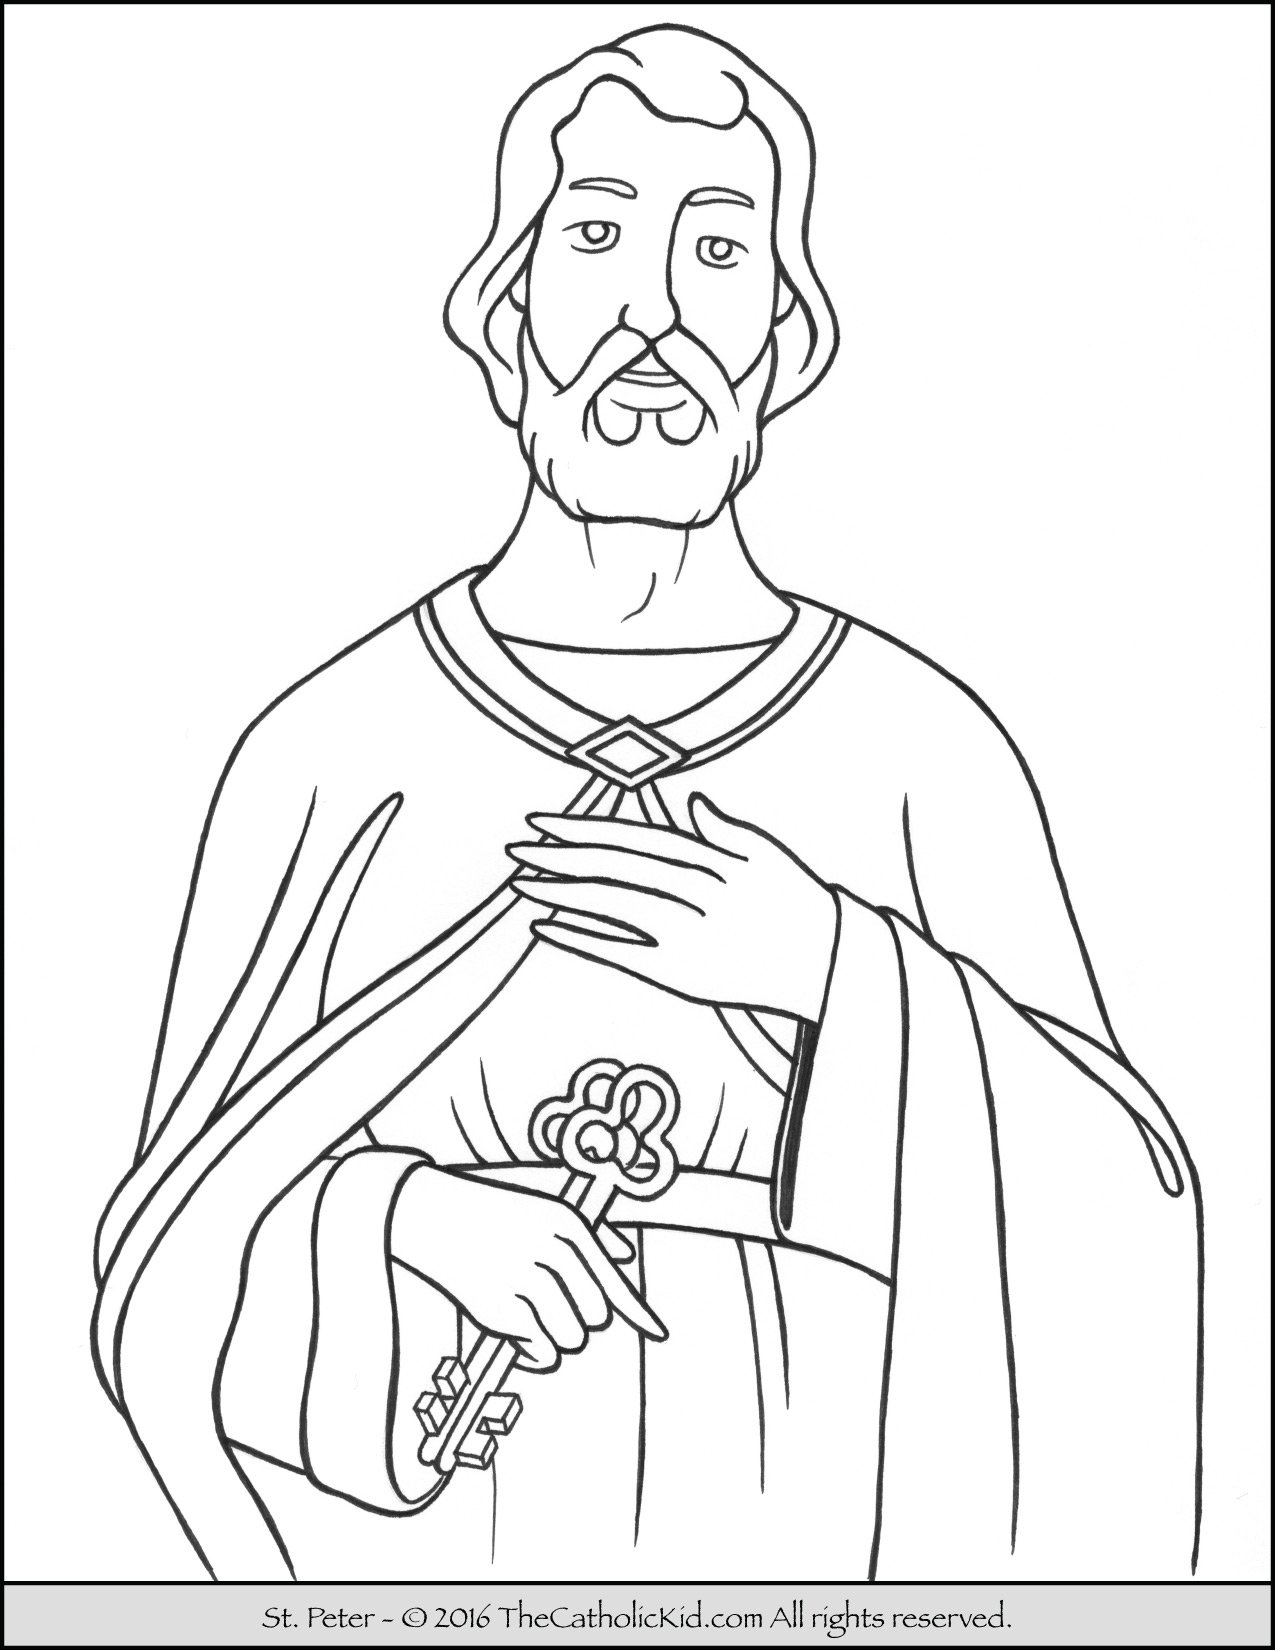 Saint Peter Coloring Page - The Catholic Kid